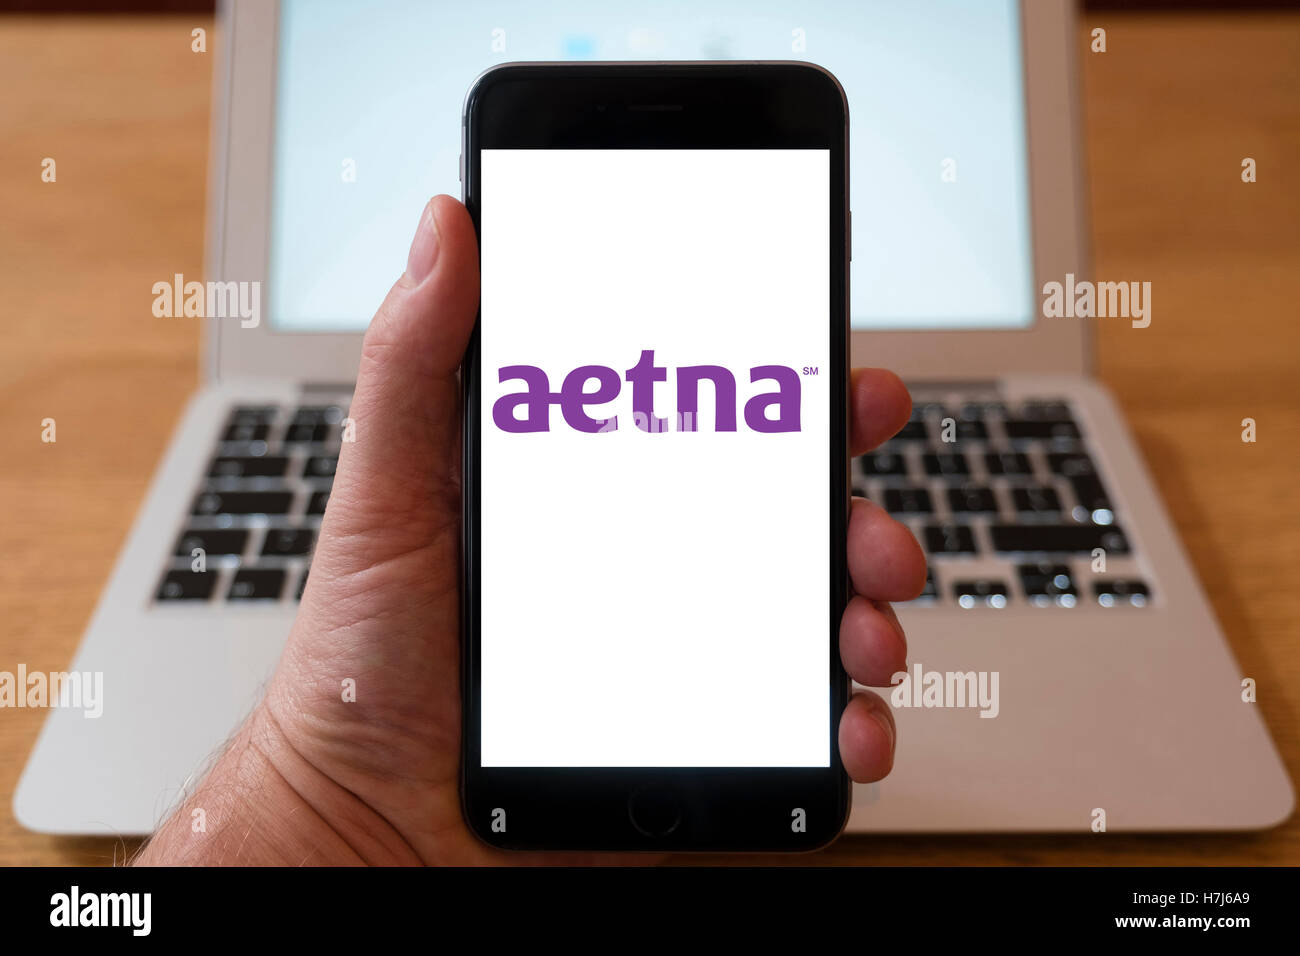 Using iPhone smart phone to display logo of Aetna; an American managed health care company - Stock Image